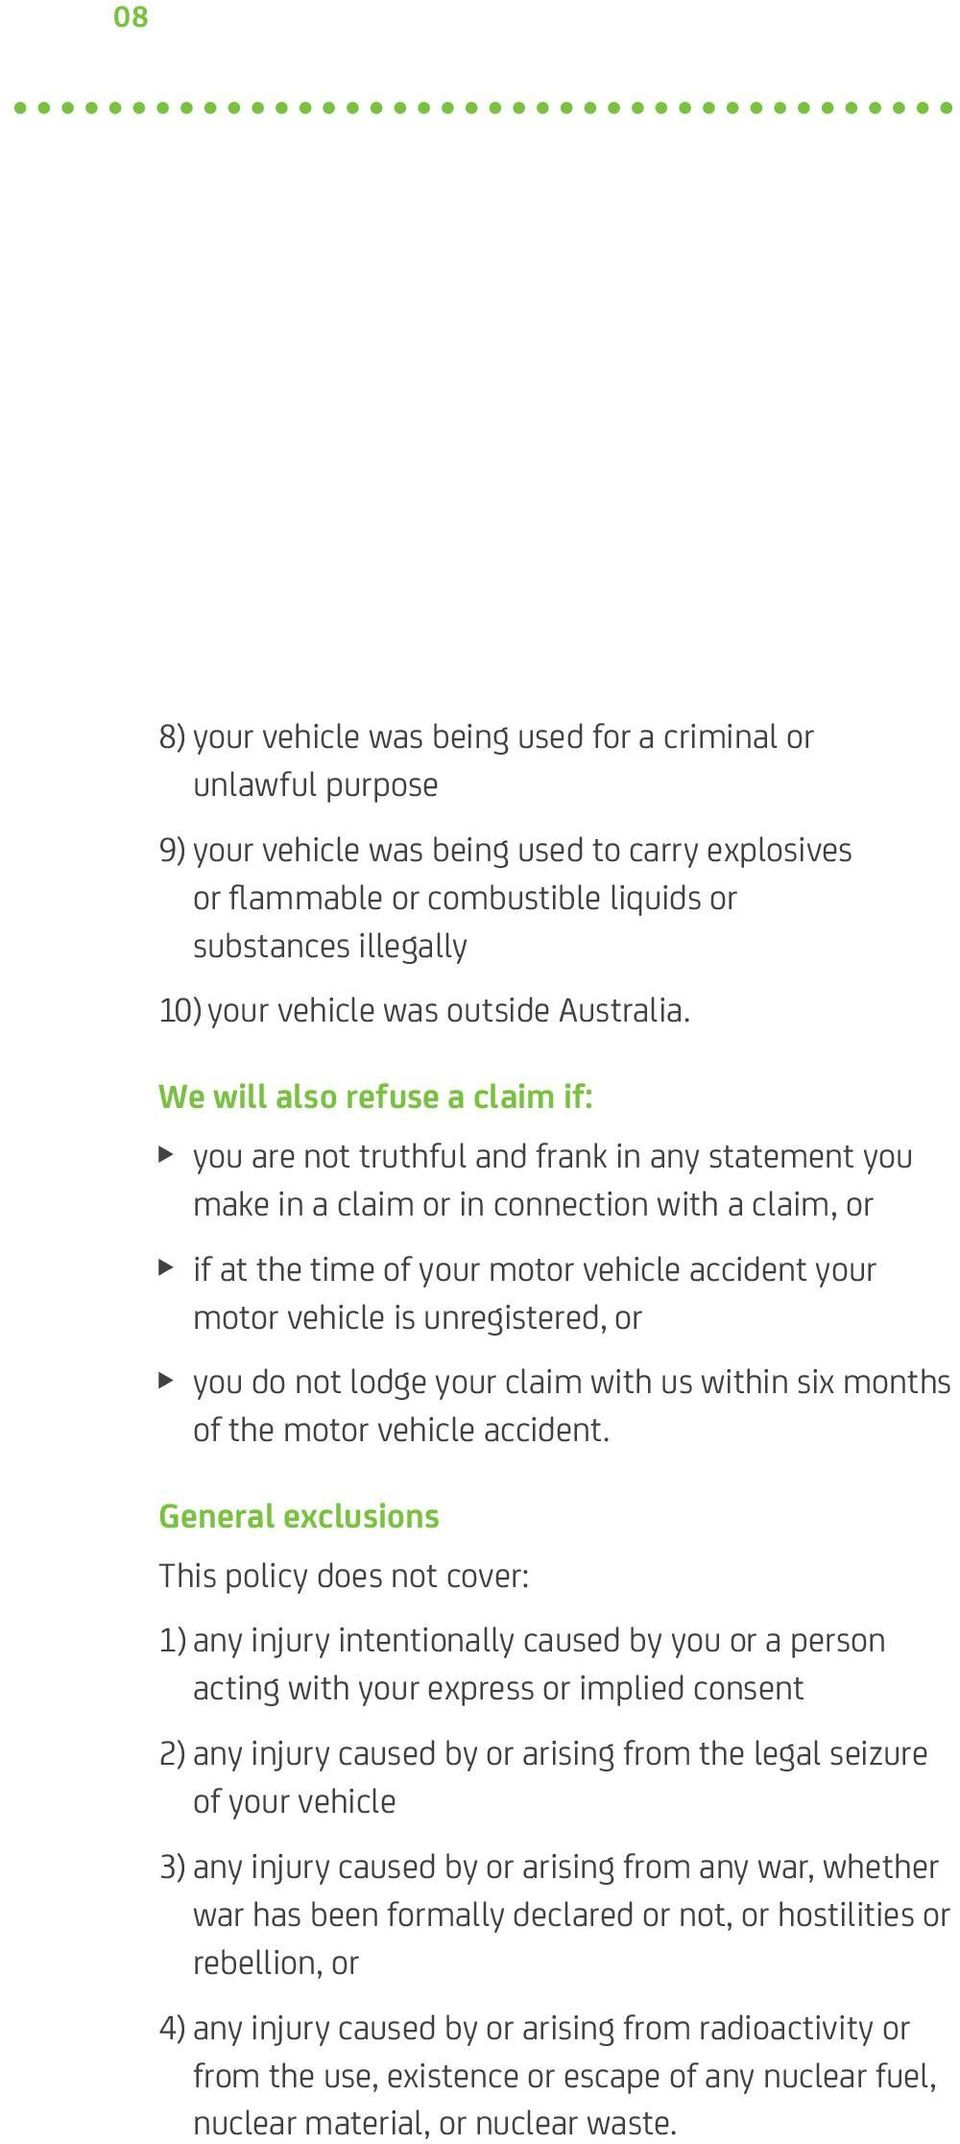 We will also refuse a claim if: you are not truthful and frank in any statement you make in a claim or in connection with a claim, or if at the time of your motor vehicle accident your motor vehicle